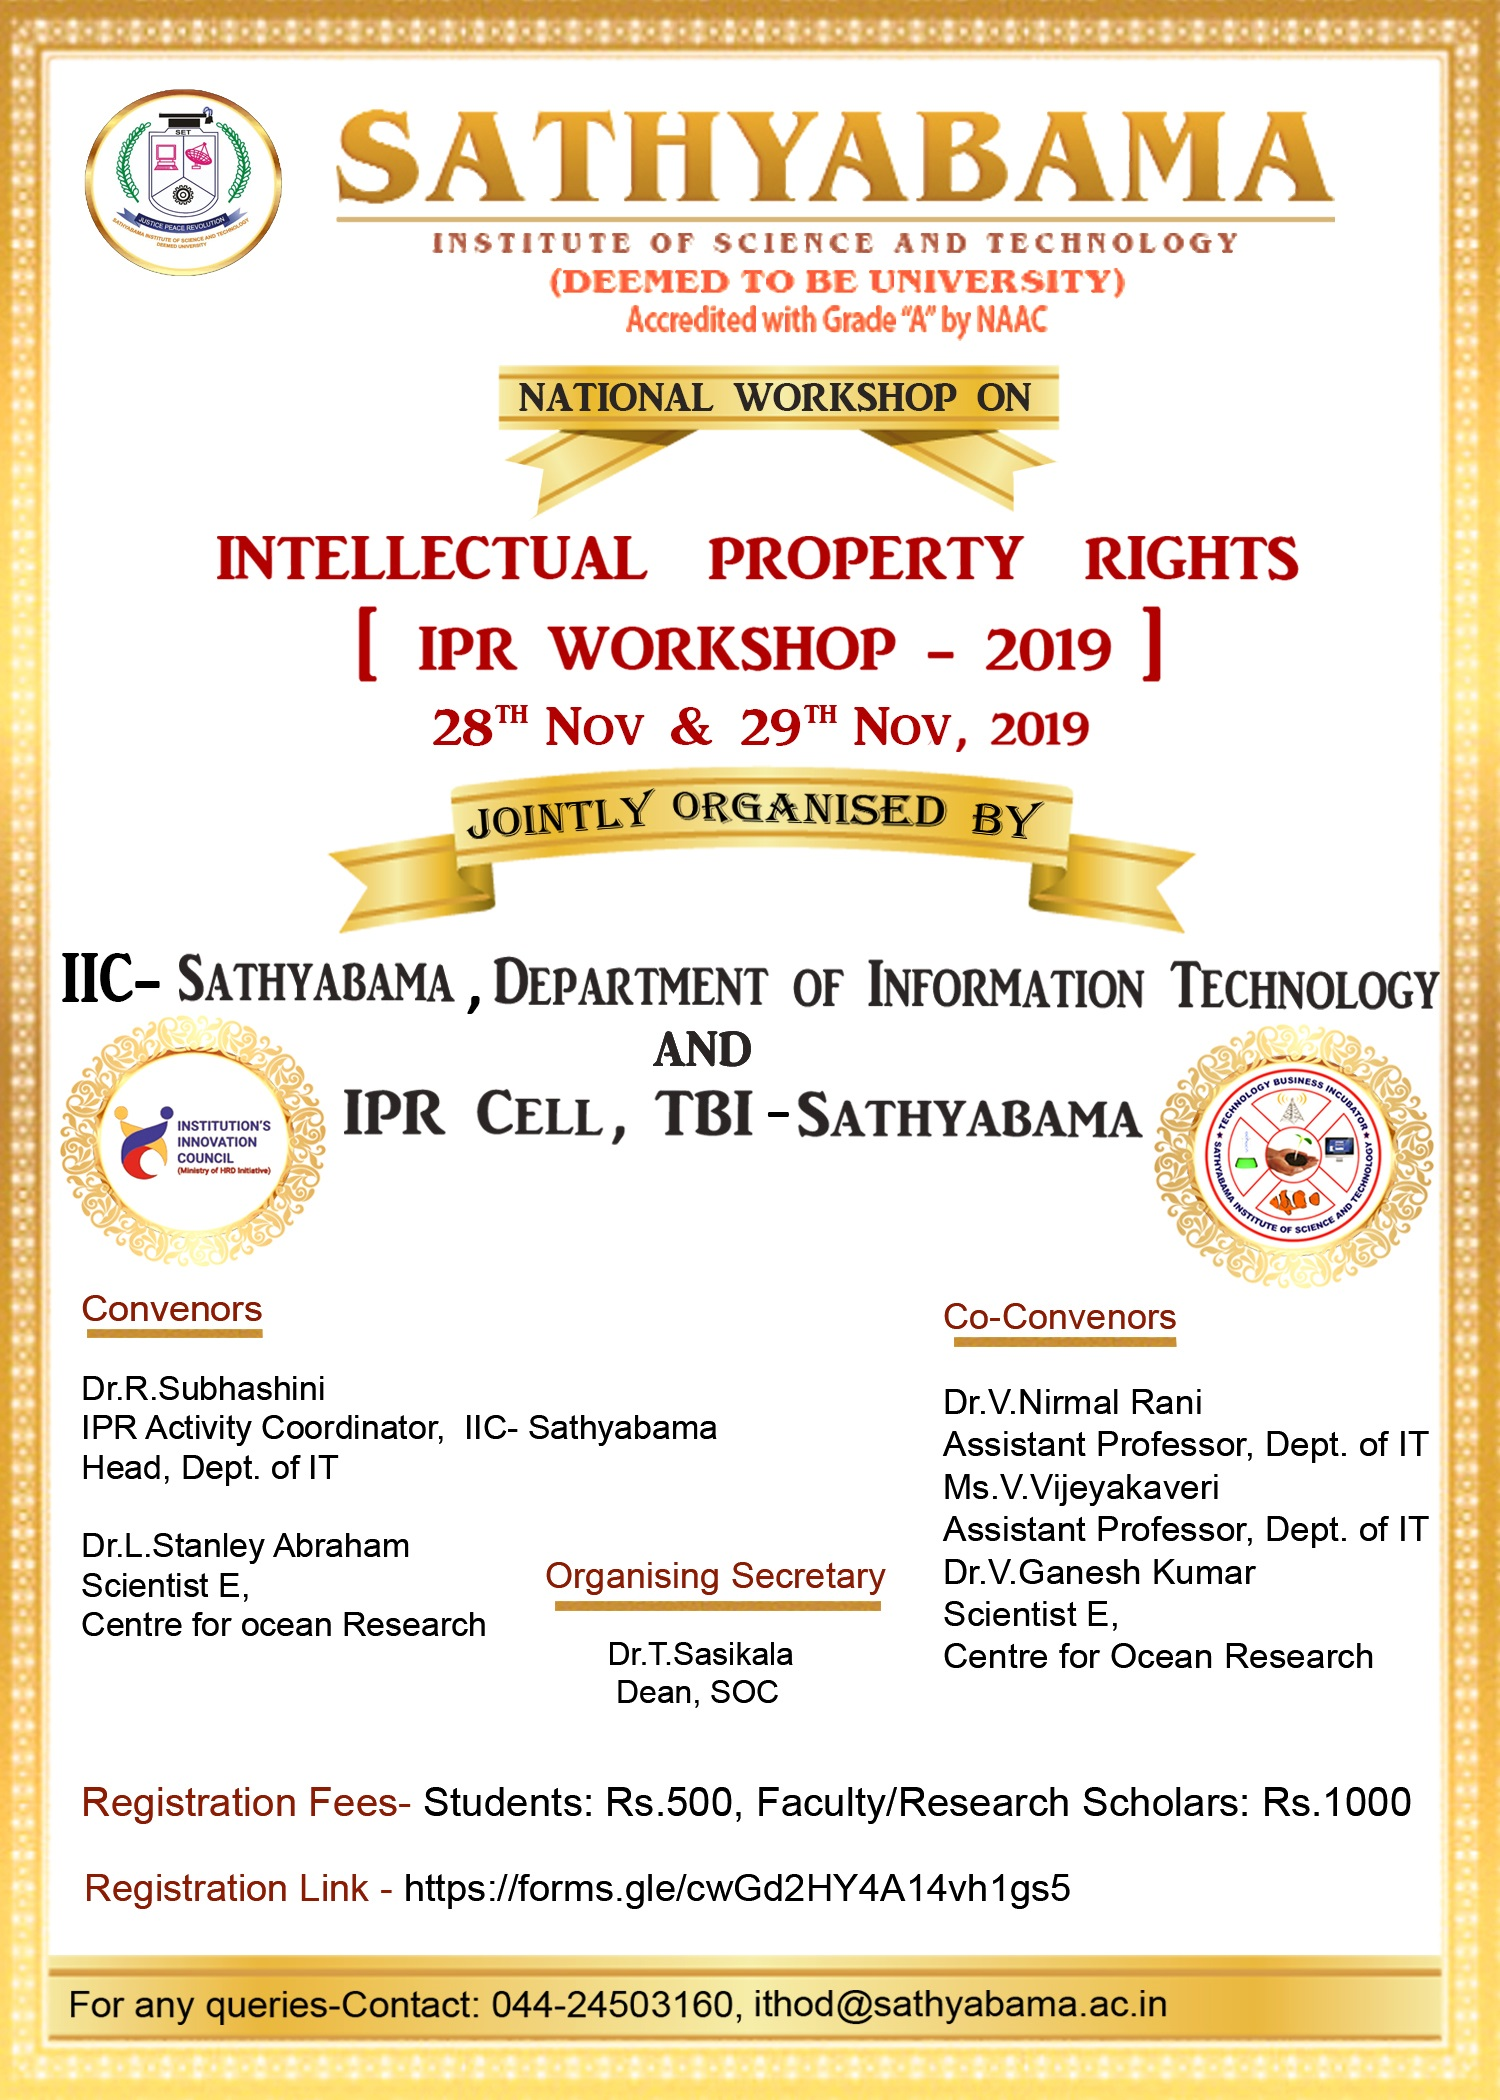 National Workshop on Intellectual Property Rights 2019